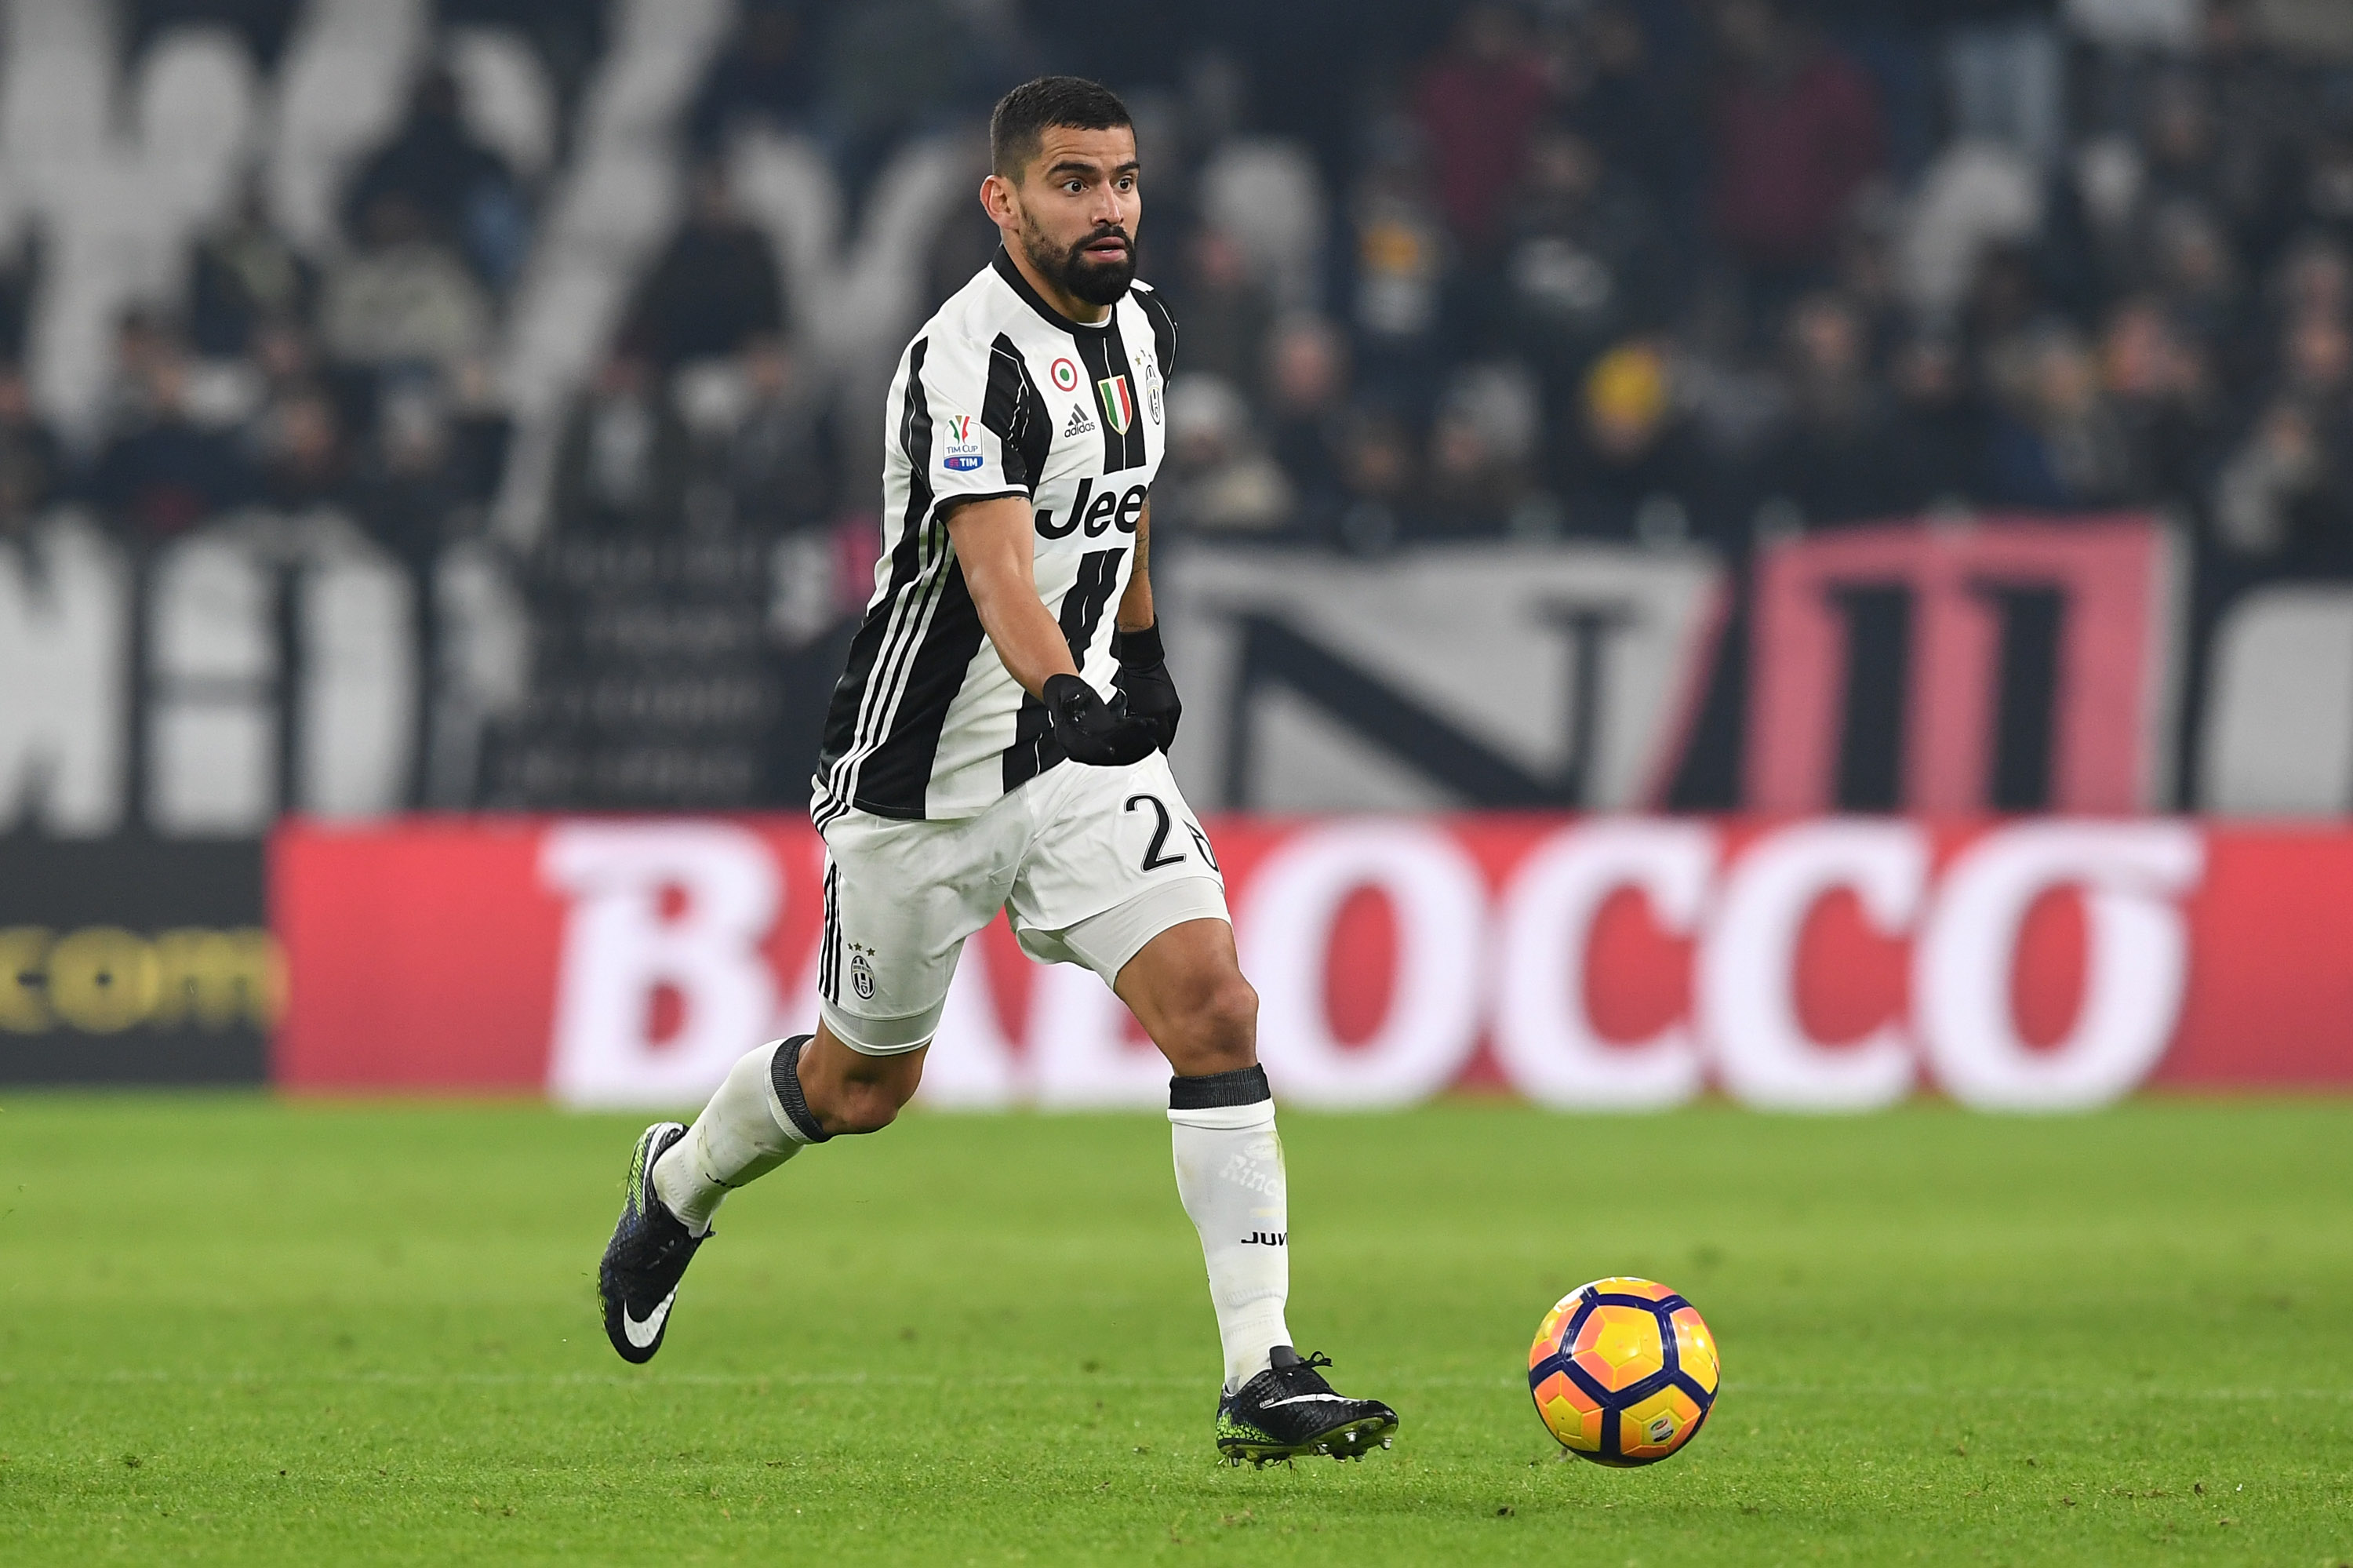 TURIN, ITALY - JANUARY 11: Tomas Rincon of FC Juventus in action during the TIM Cup match between FC Juventus and Atalanta BC at Juventus Stadium on January 11, 2017 in Turin, Italy. (Photo by Valerio Pennicino/Getty Images)